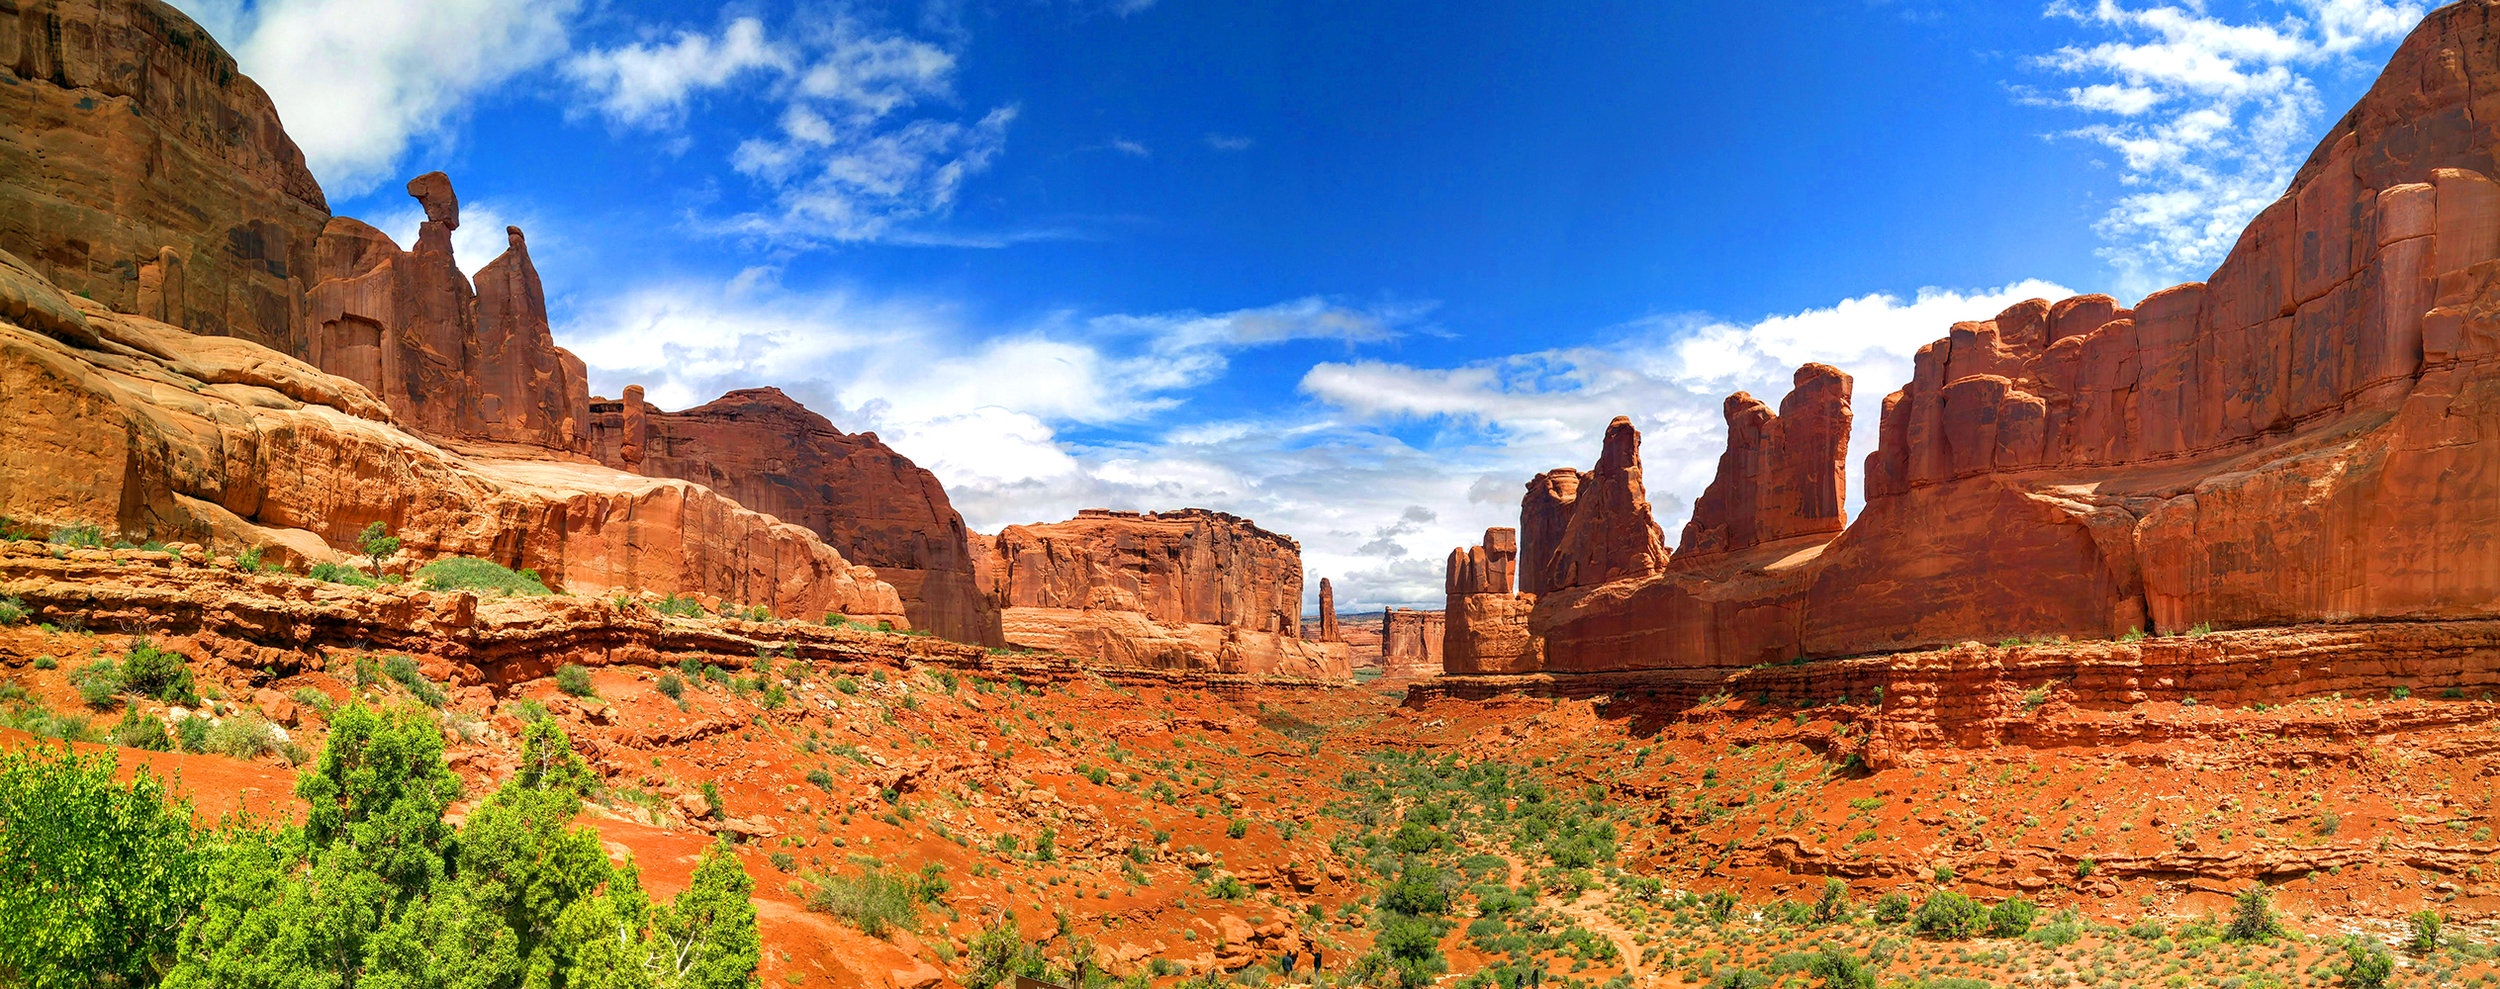 Arches National Park, Utah, 2016. LG G4 Panorama.